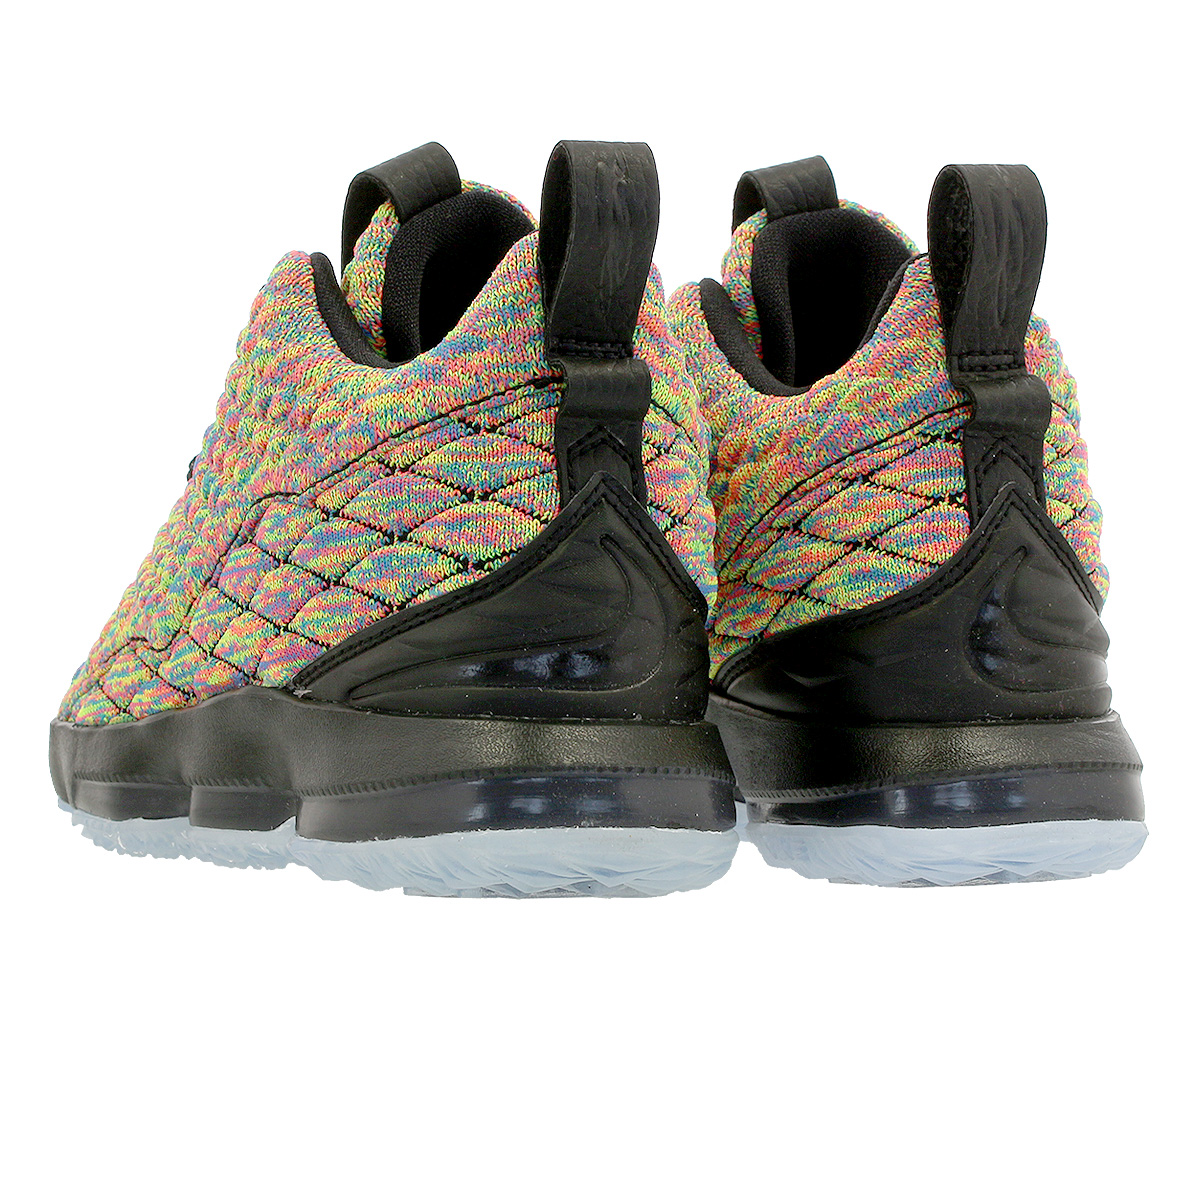 0148110a5a8 LOWTEX PLUS  NIKE LEBRON 15 PS Nike Revlon 16 PS BLACK MULTI COLOR ...